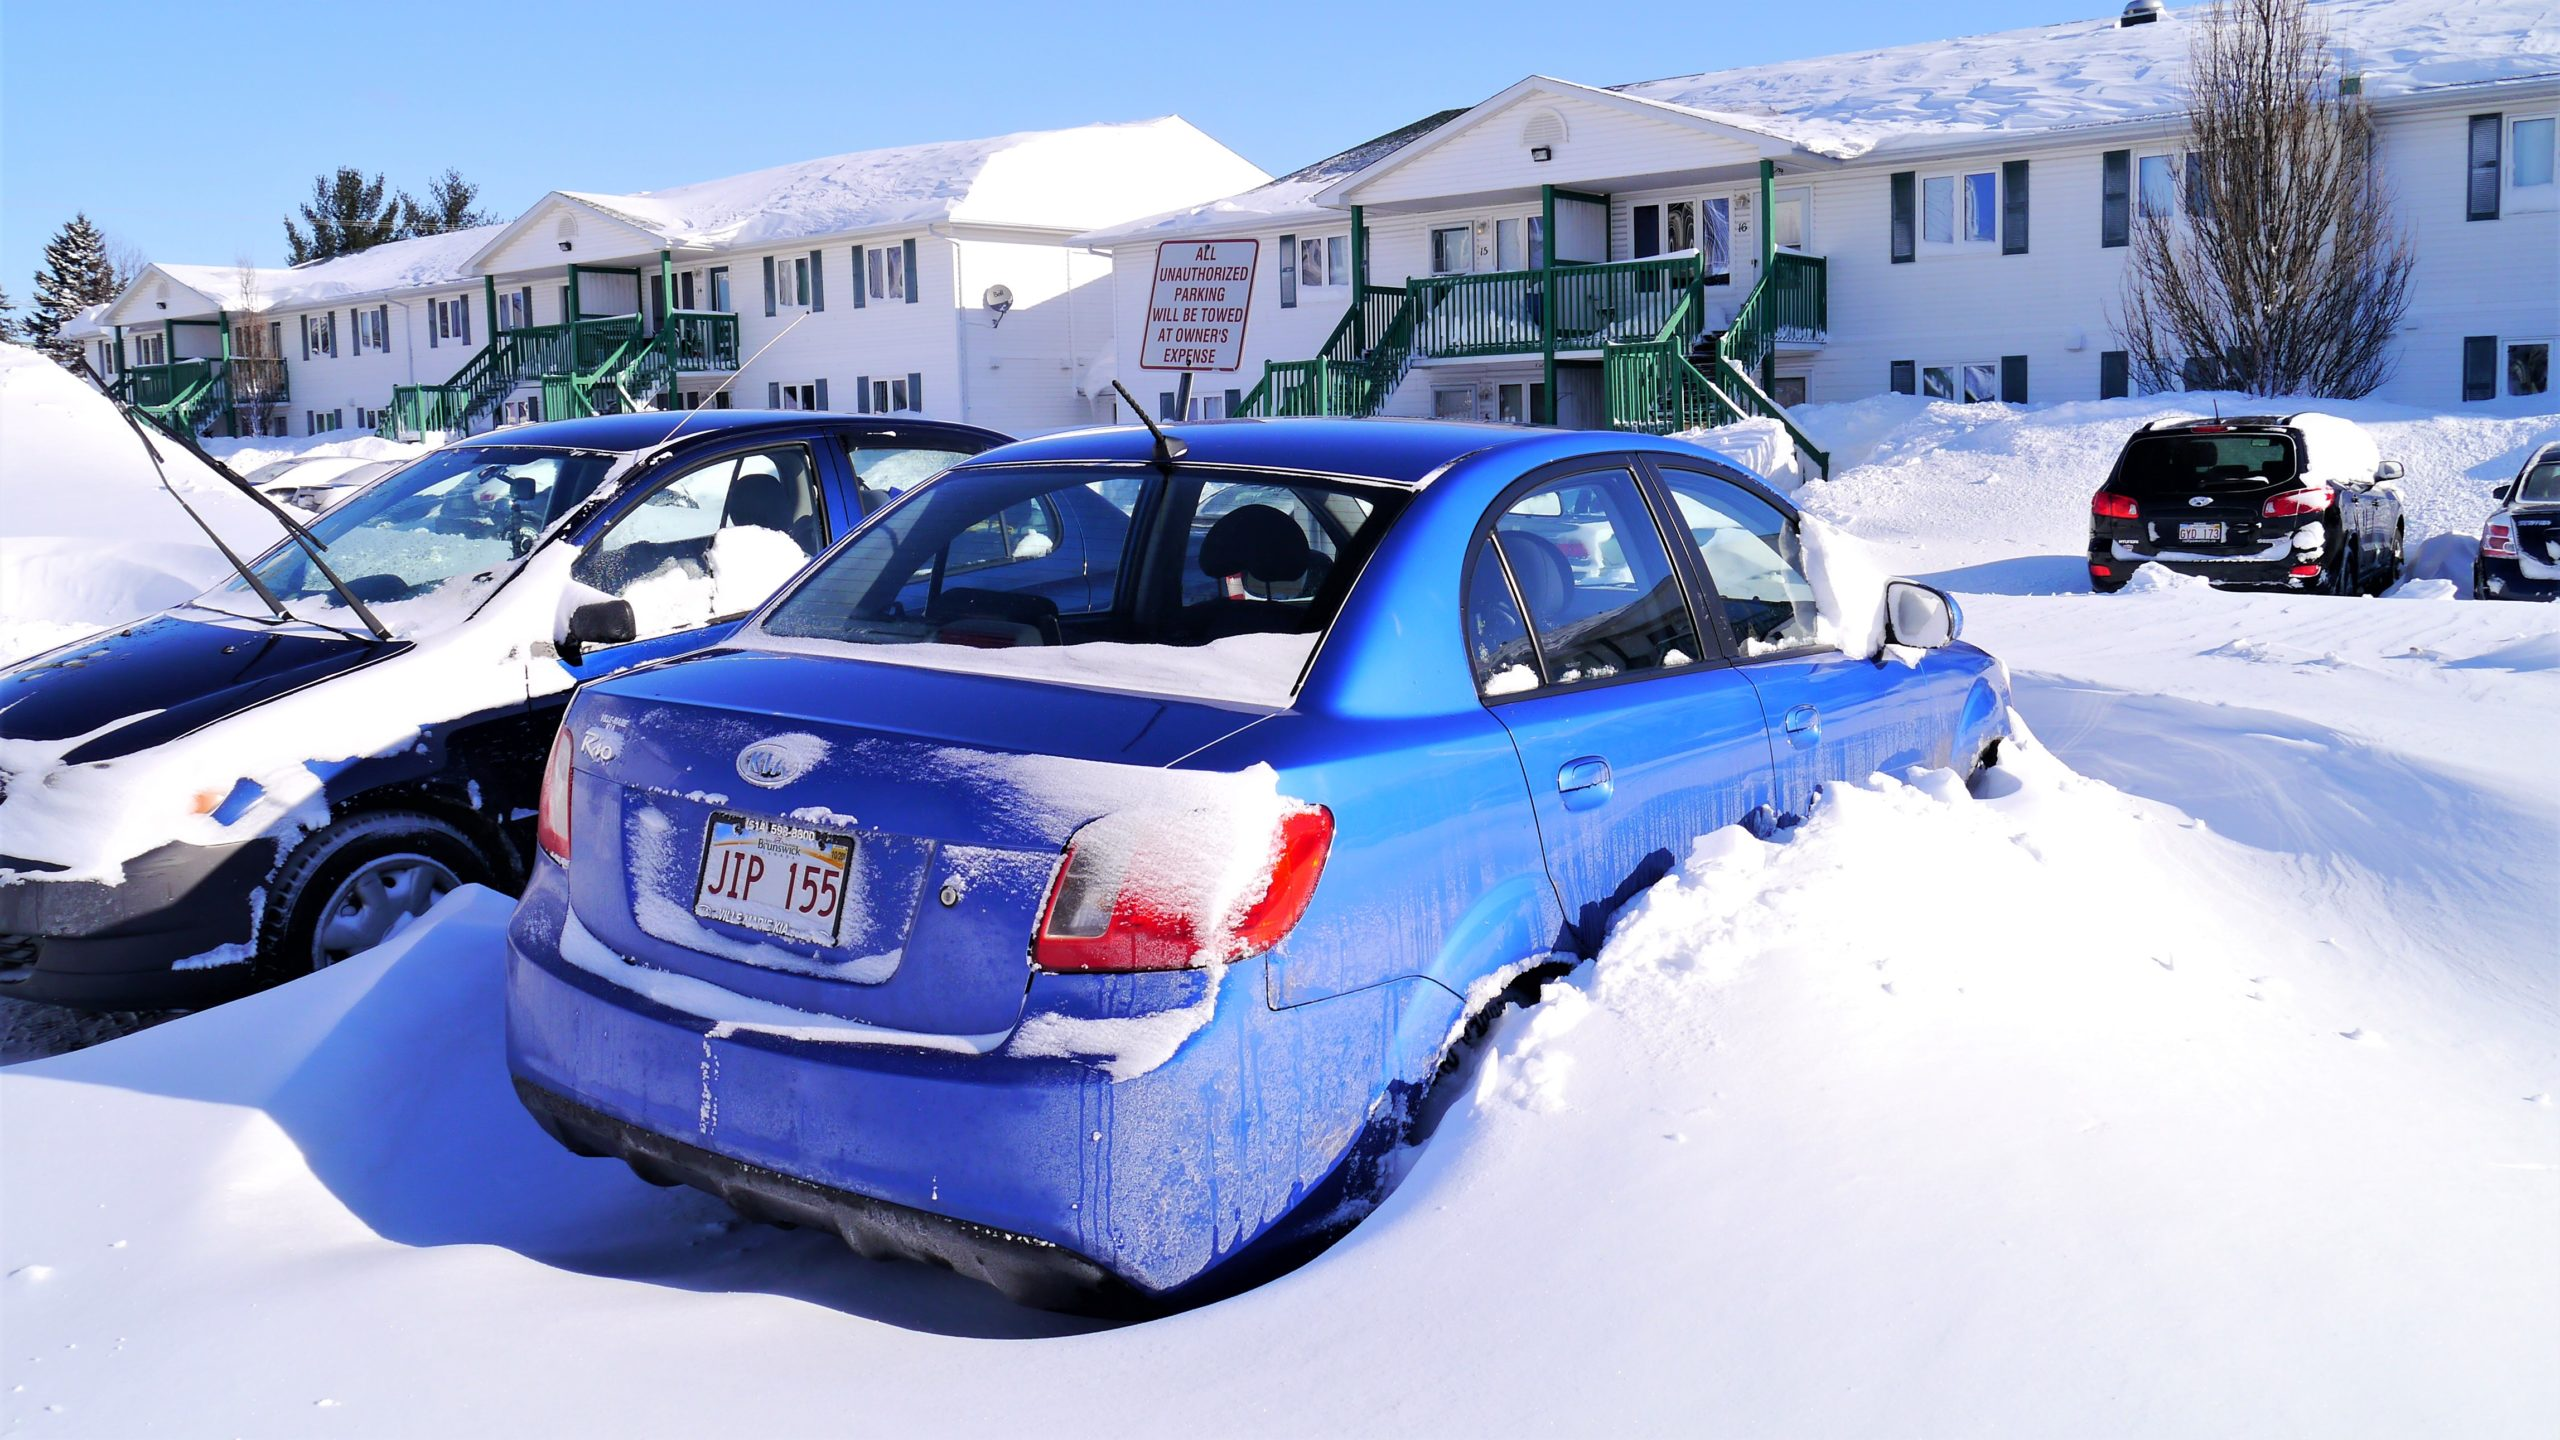 Canada tempete neige road-trip hiver blog voyage arpenter le chemin